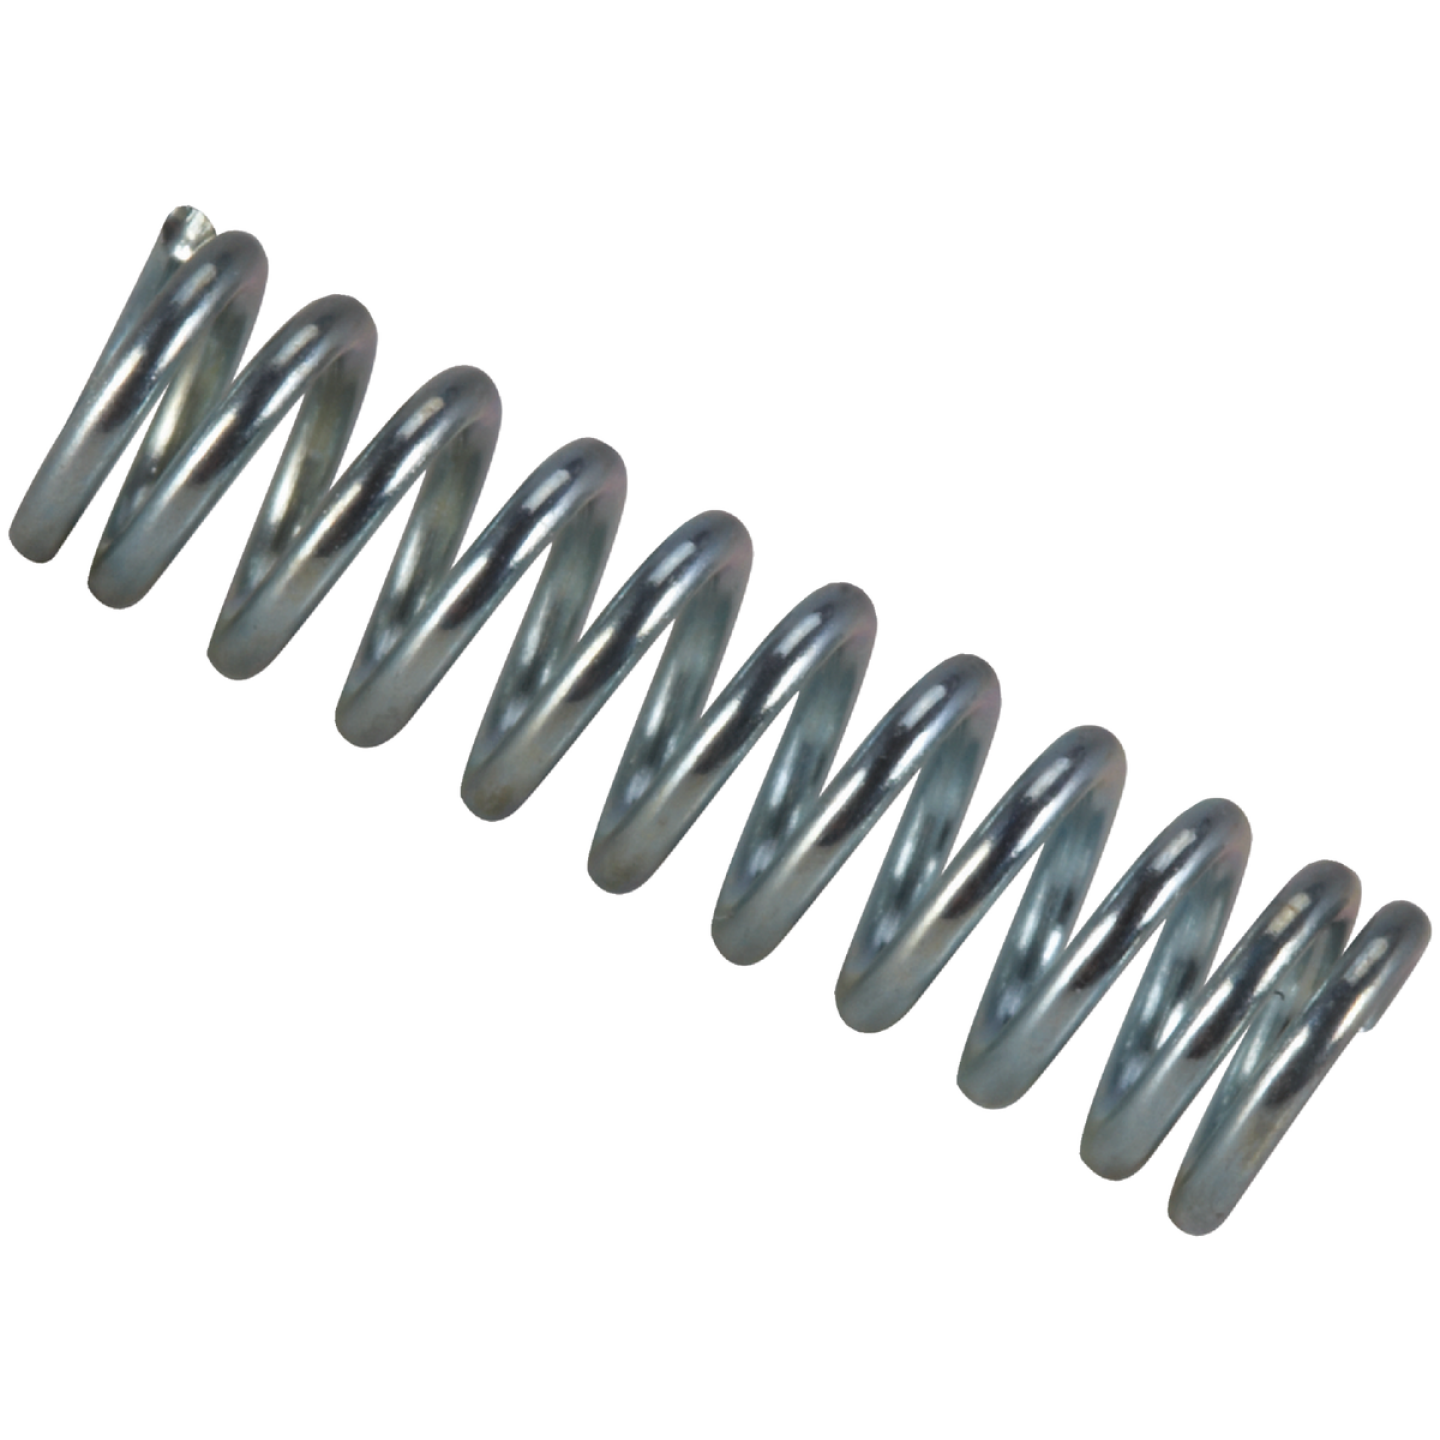 Century Spring 1 In. x 5/32 In. Compression Spring (6 Count) Image 1